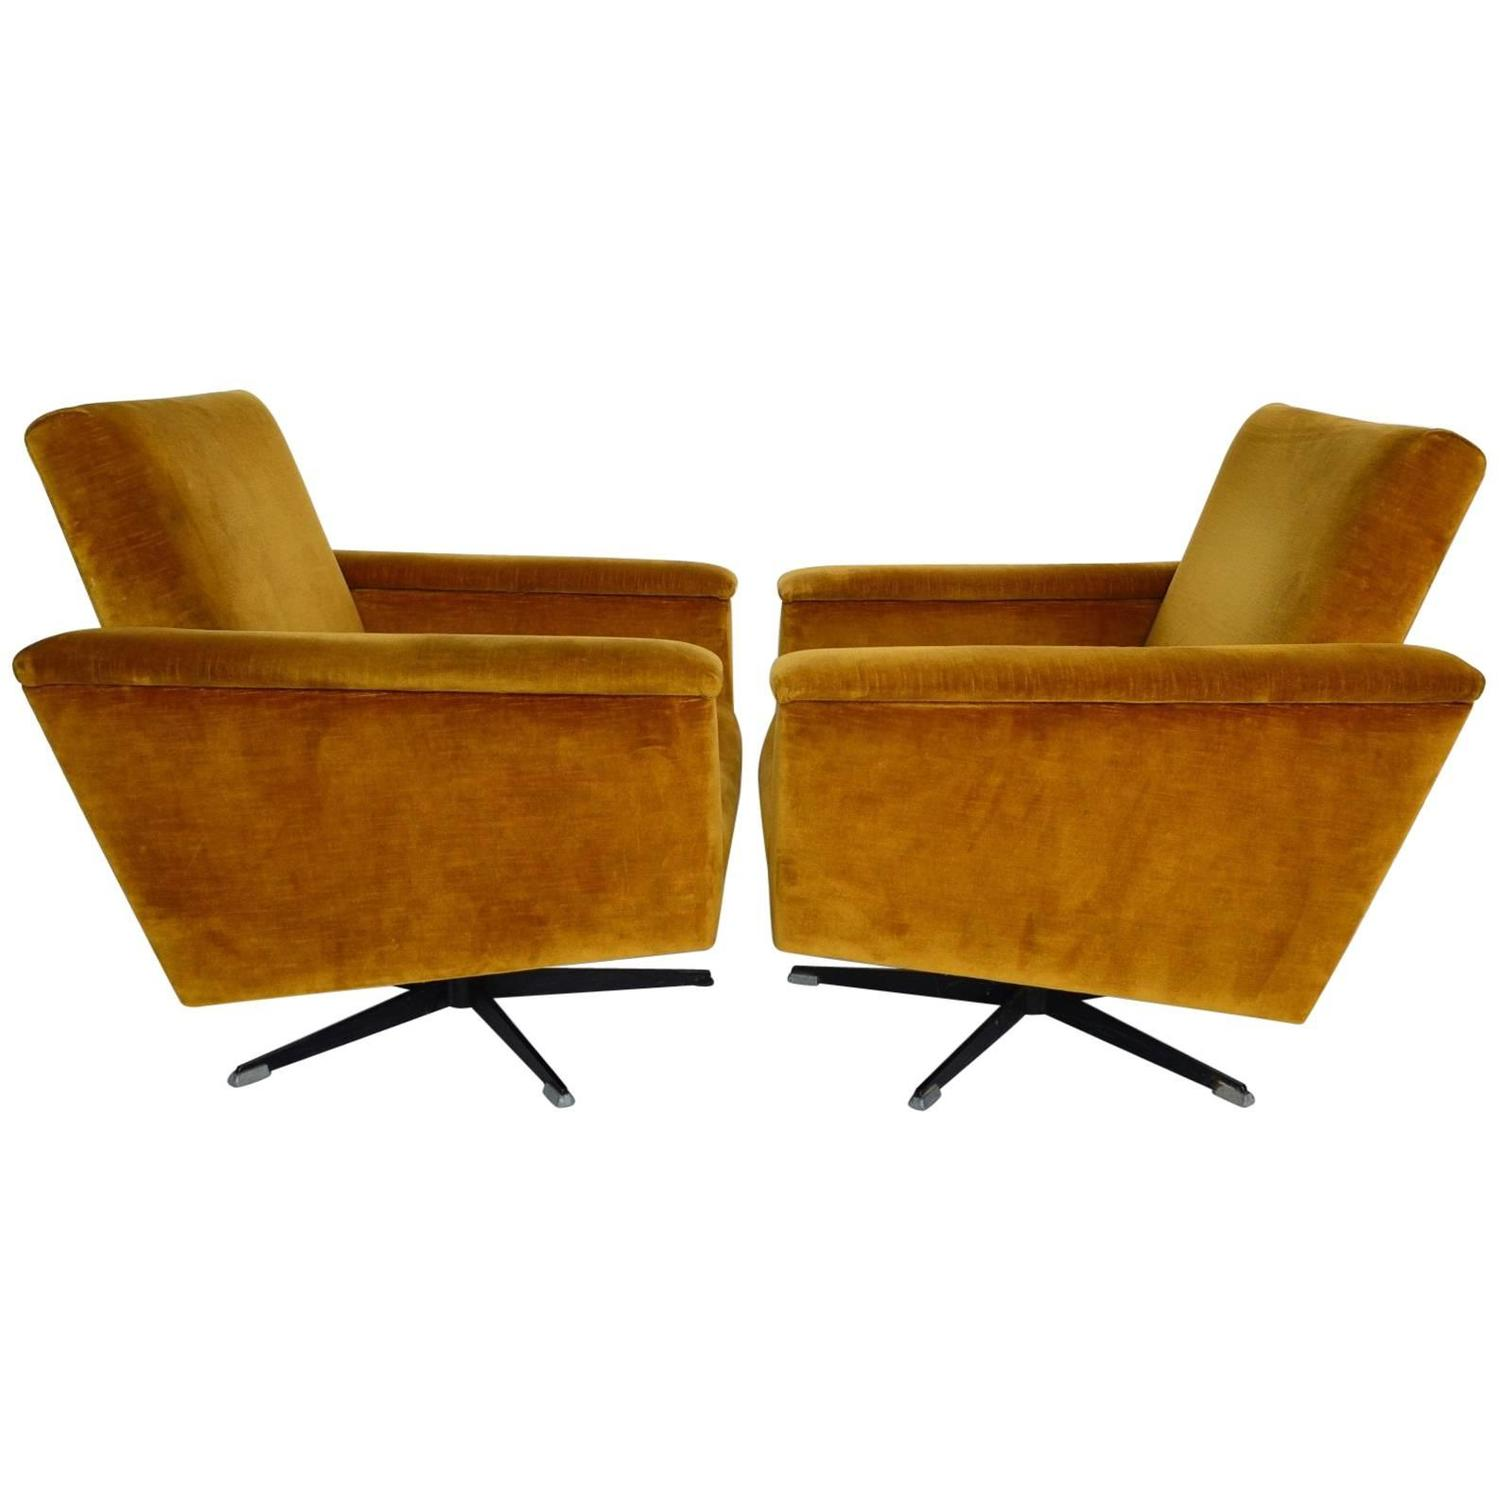 Swiss Mid Century Men s Swivel Club Chairs or Lounge Chairs in